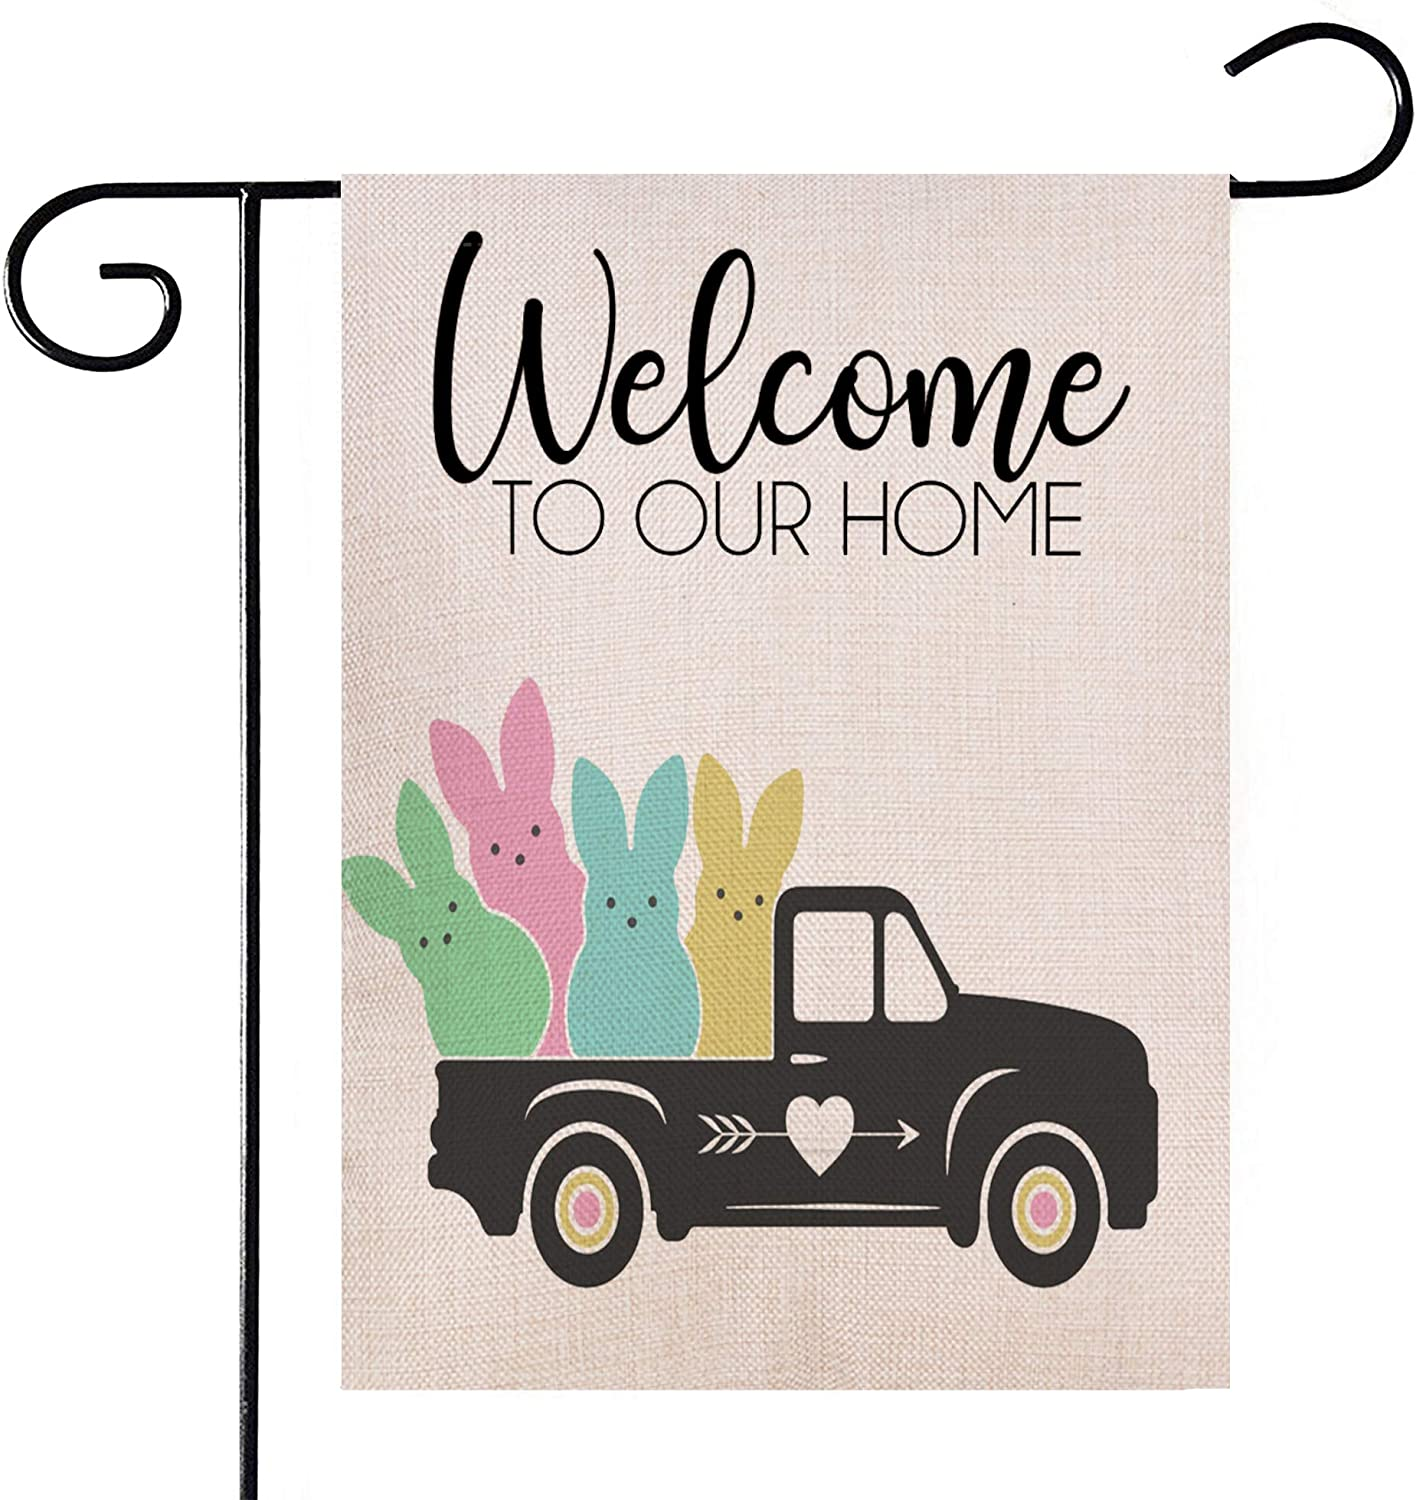 Hlonon Easter Garden Flag 12x18 Double Sided Welcome Garden Flag Easter Bunny Rabbit Car Easter Spring Decor for Easter Yard Decorations Outdoor and Home Rustic Farmhouse